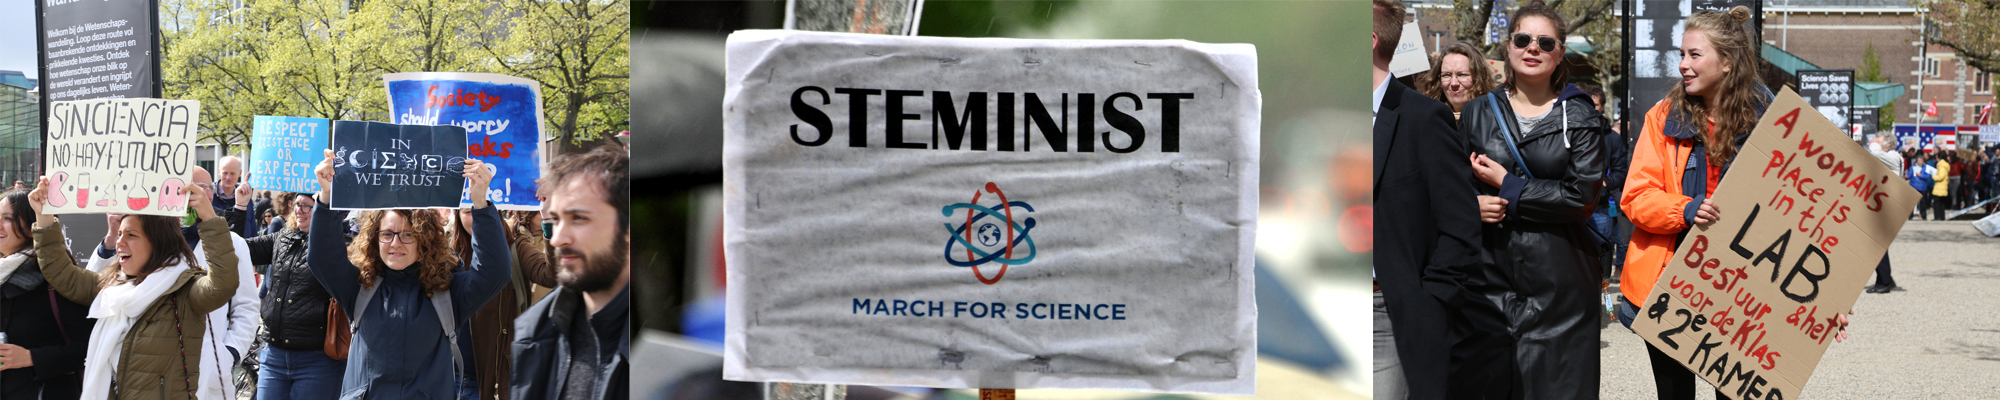 science, people protesting, signs: steminist - march for science, a woman's place is in the lab